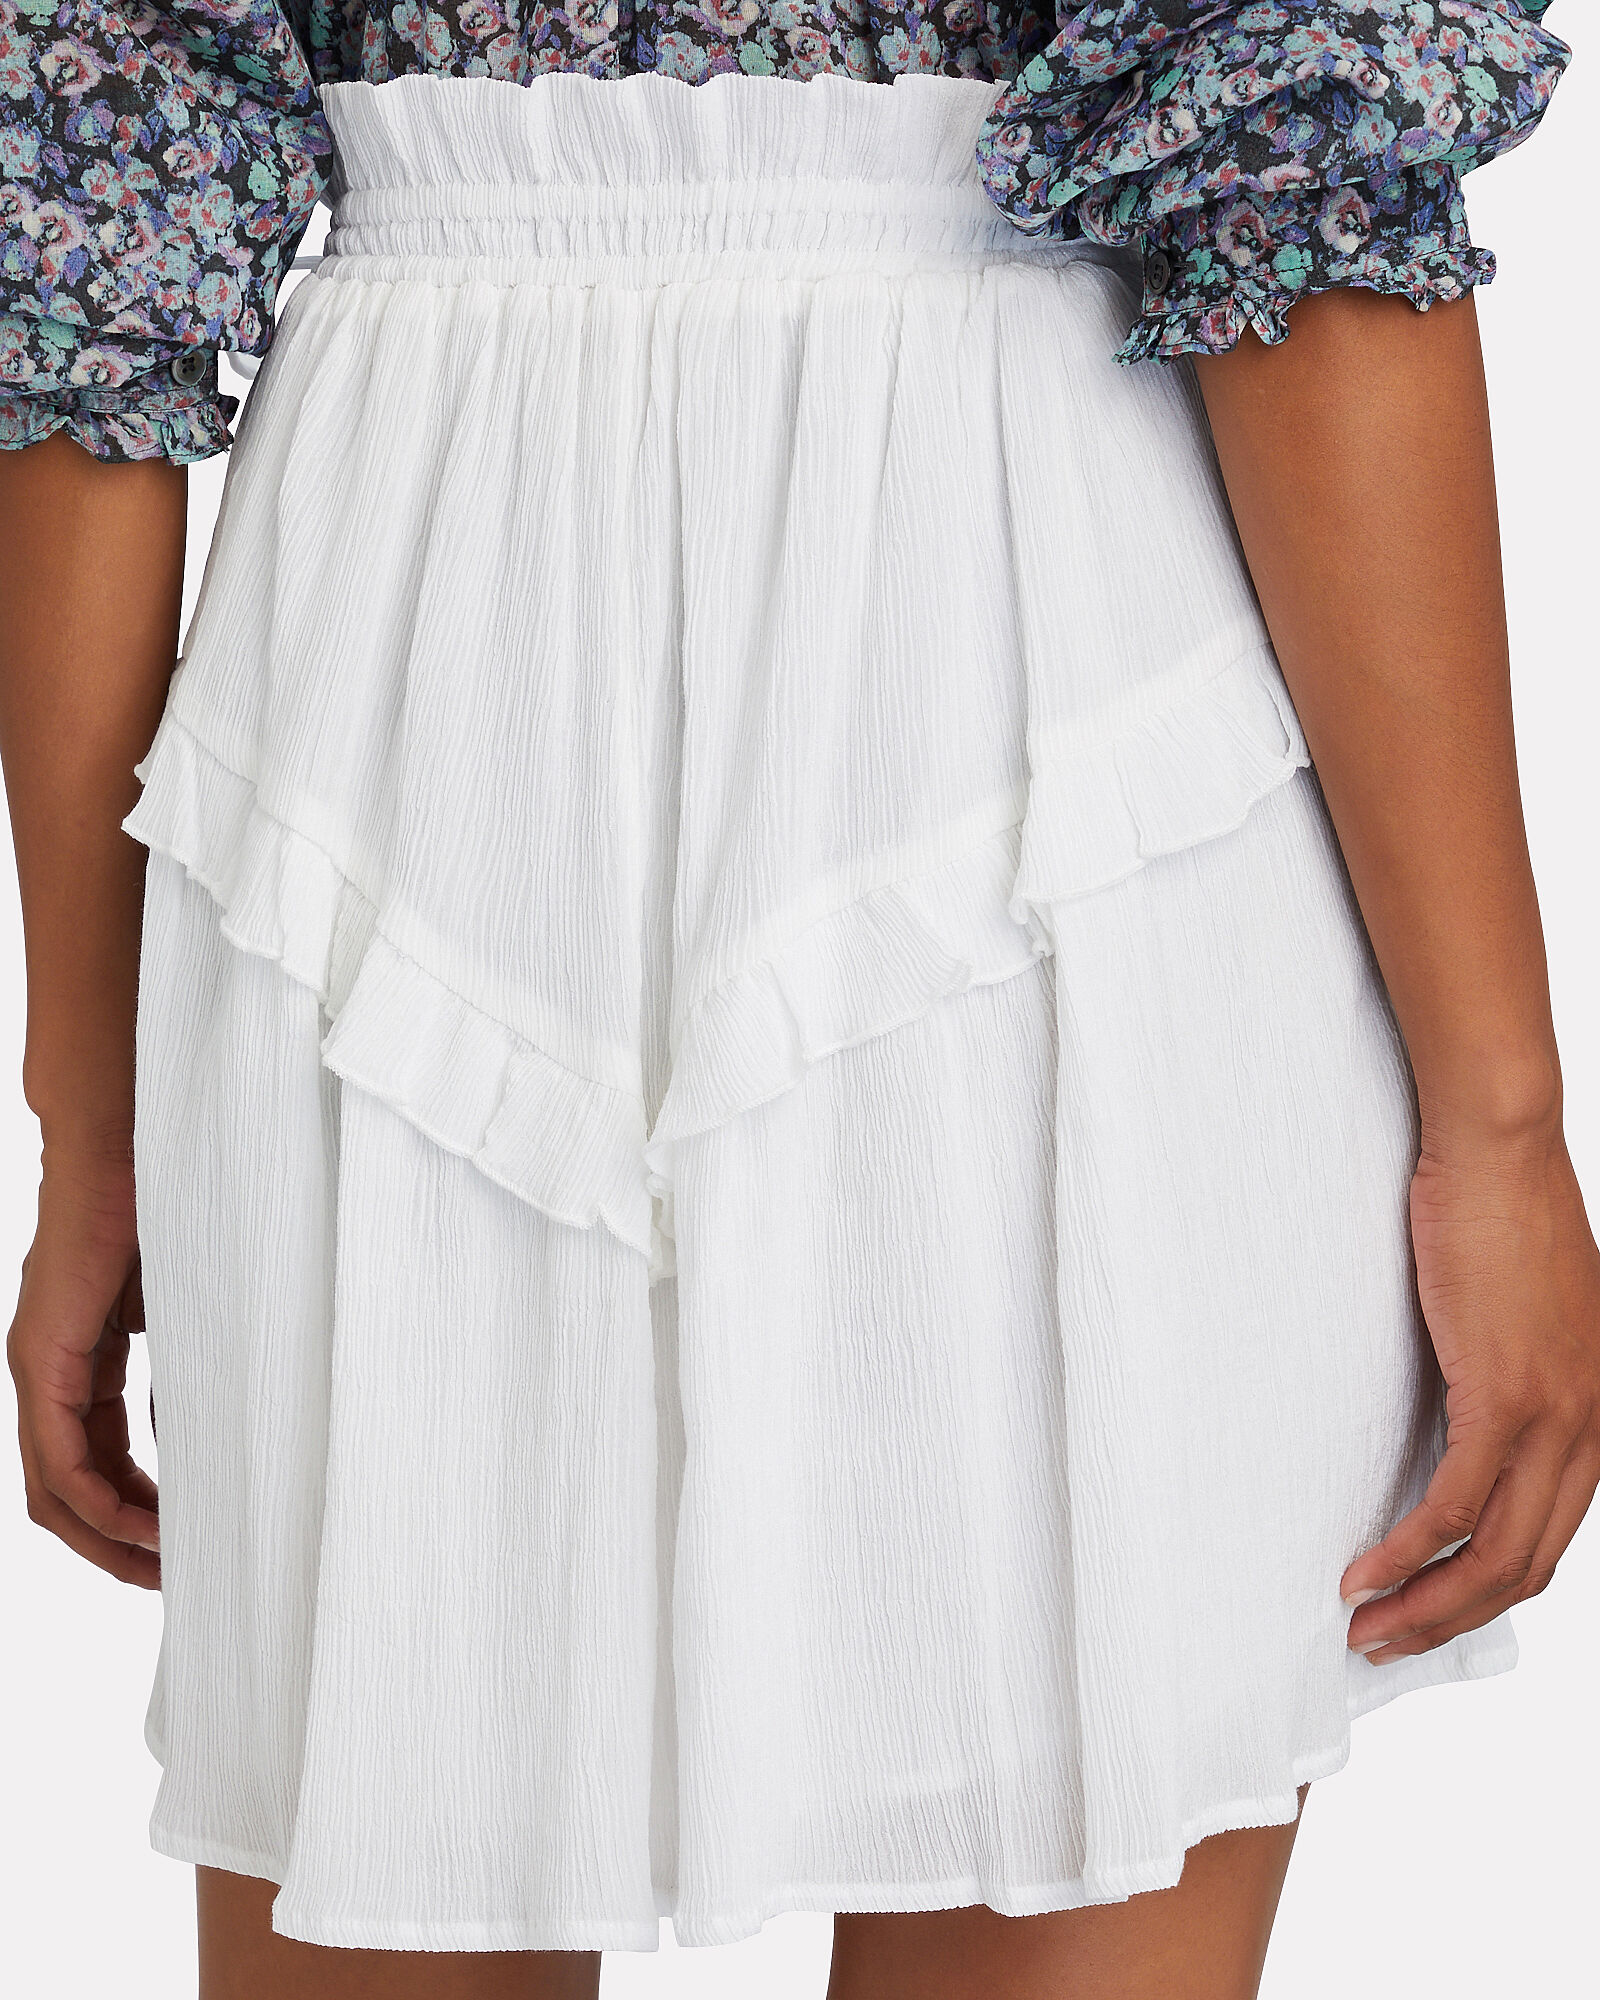 Itelo Ruffled Mini Skirt, WHITE, hi-res